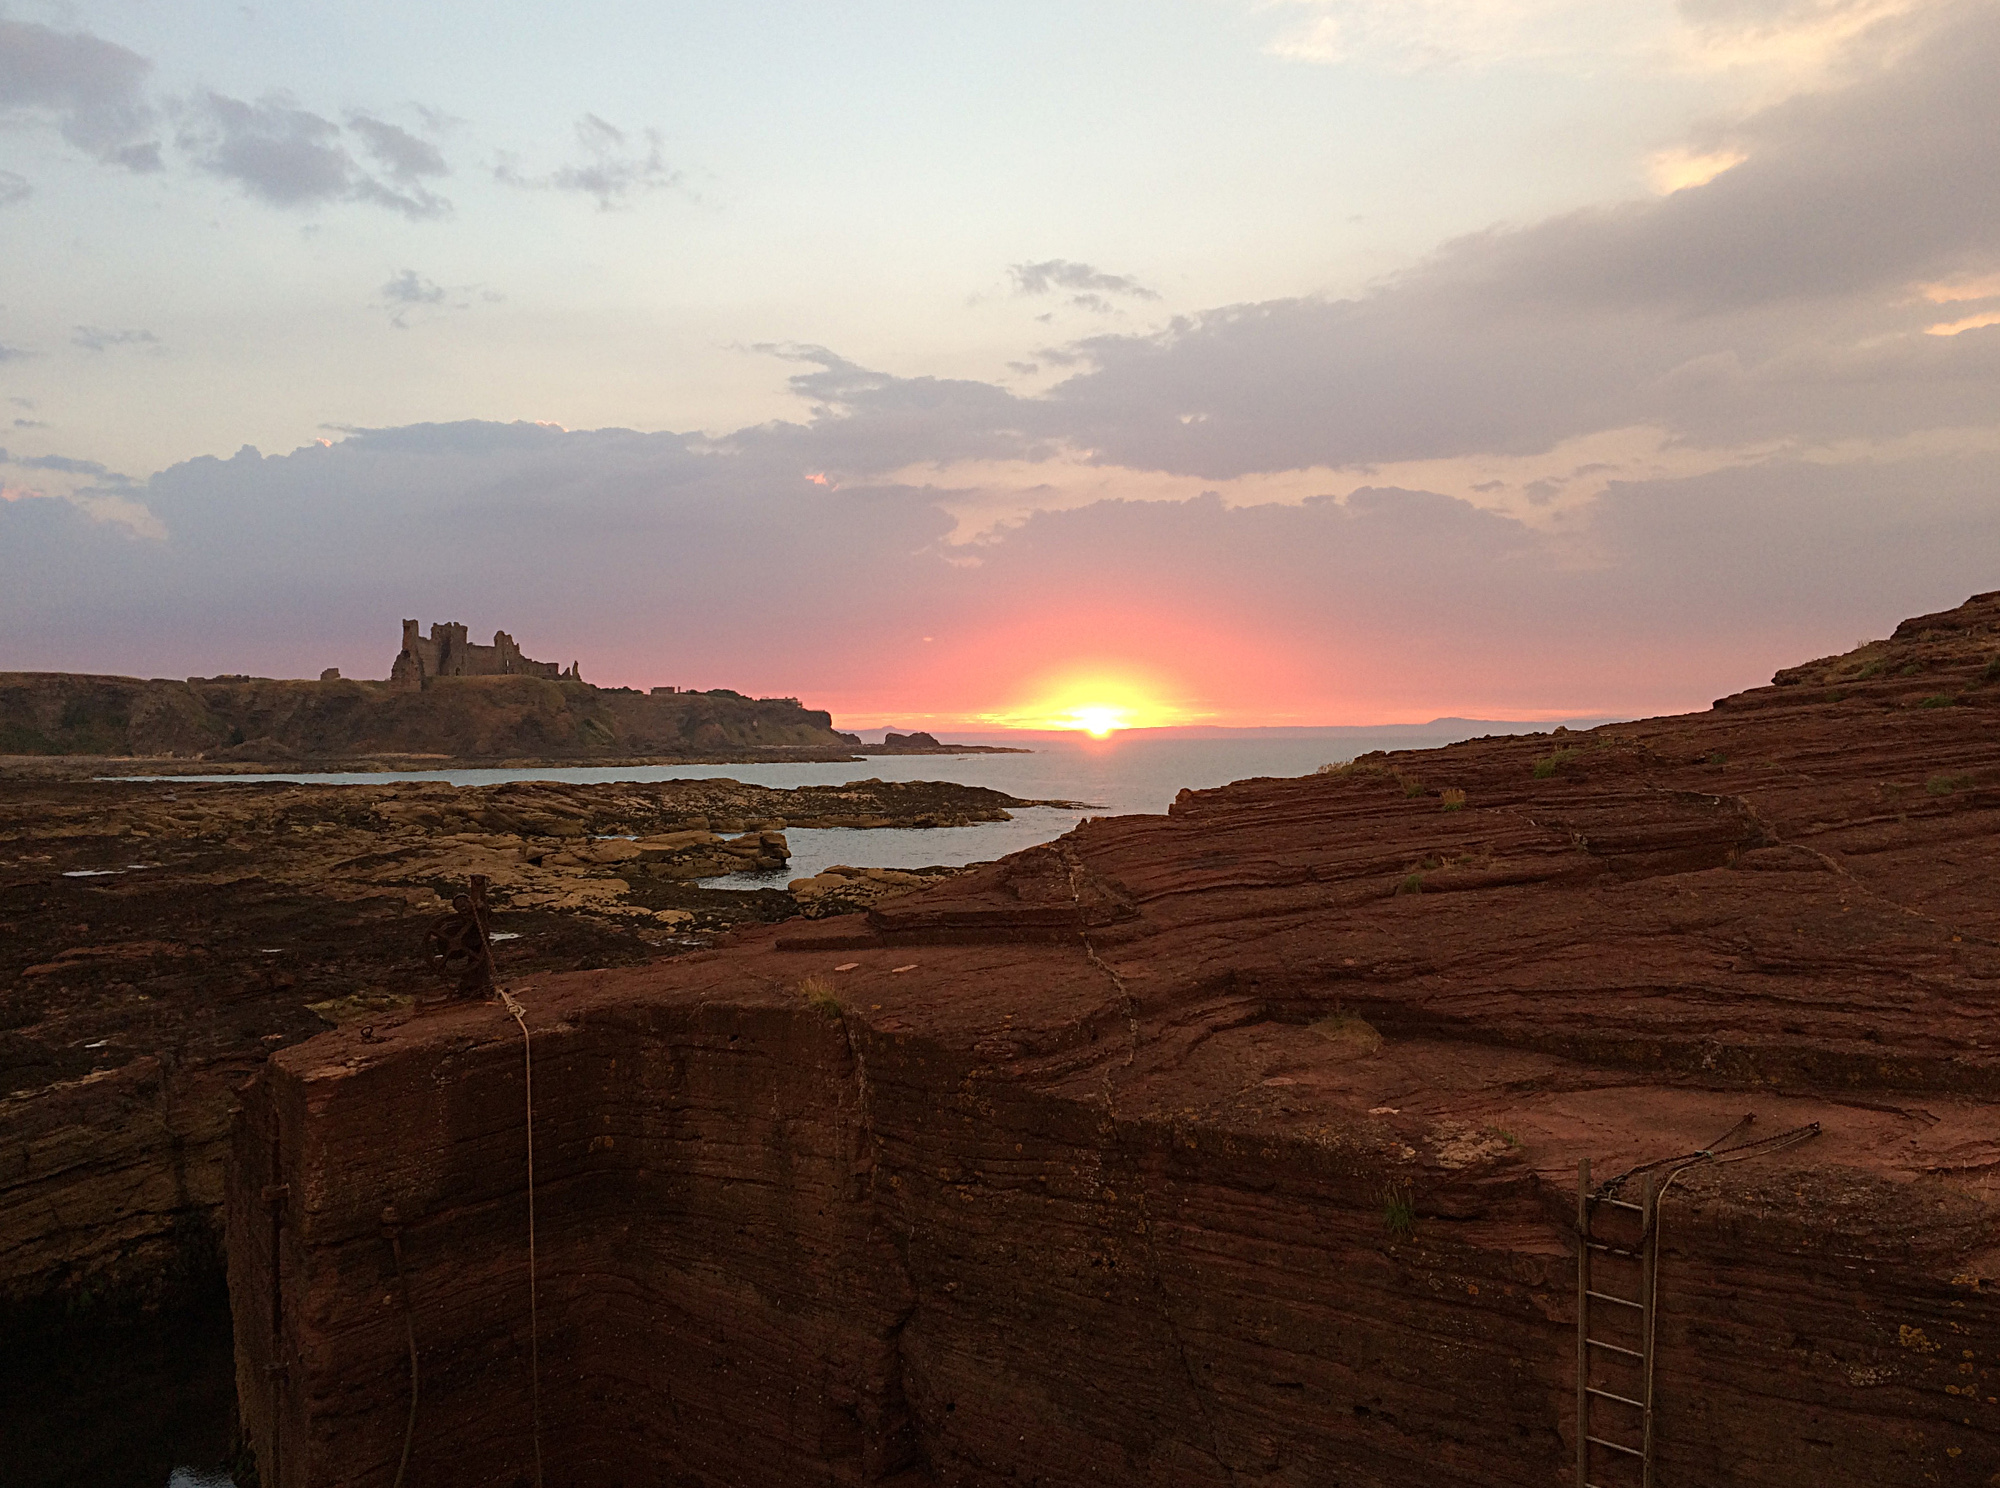 Sunset on Tantallan Castle